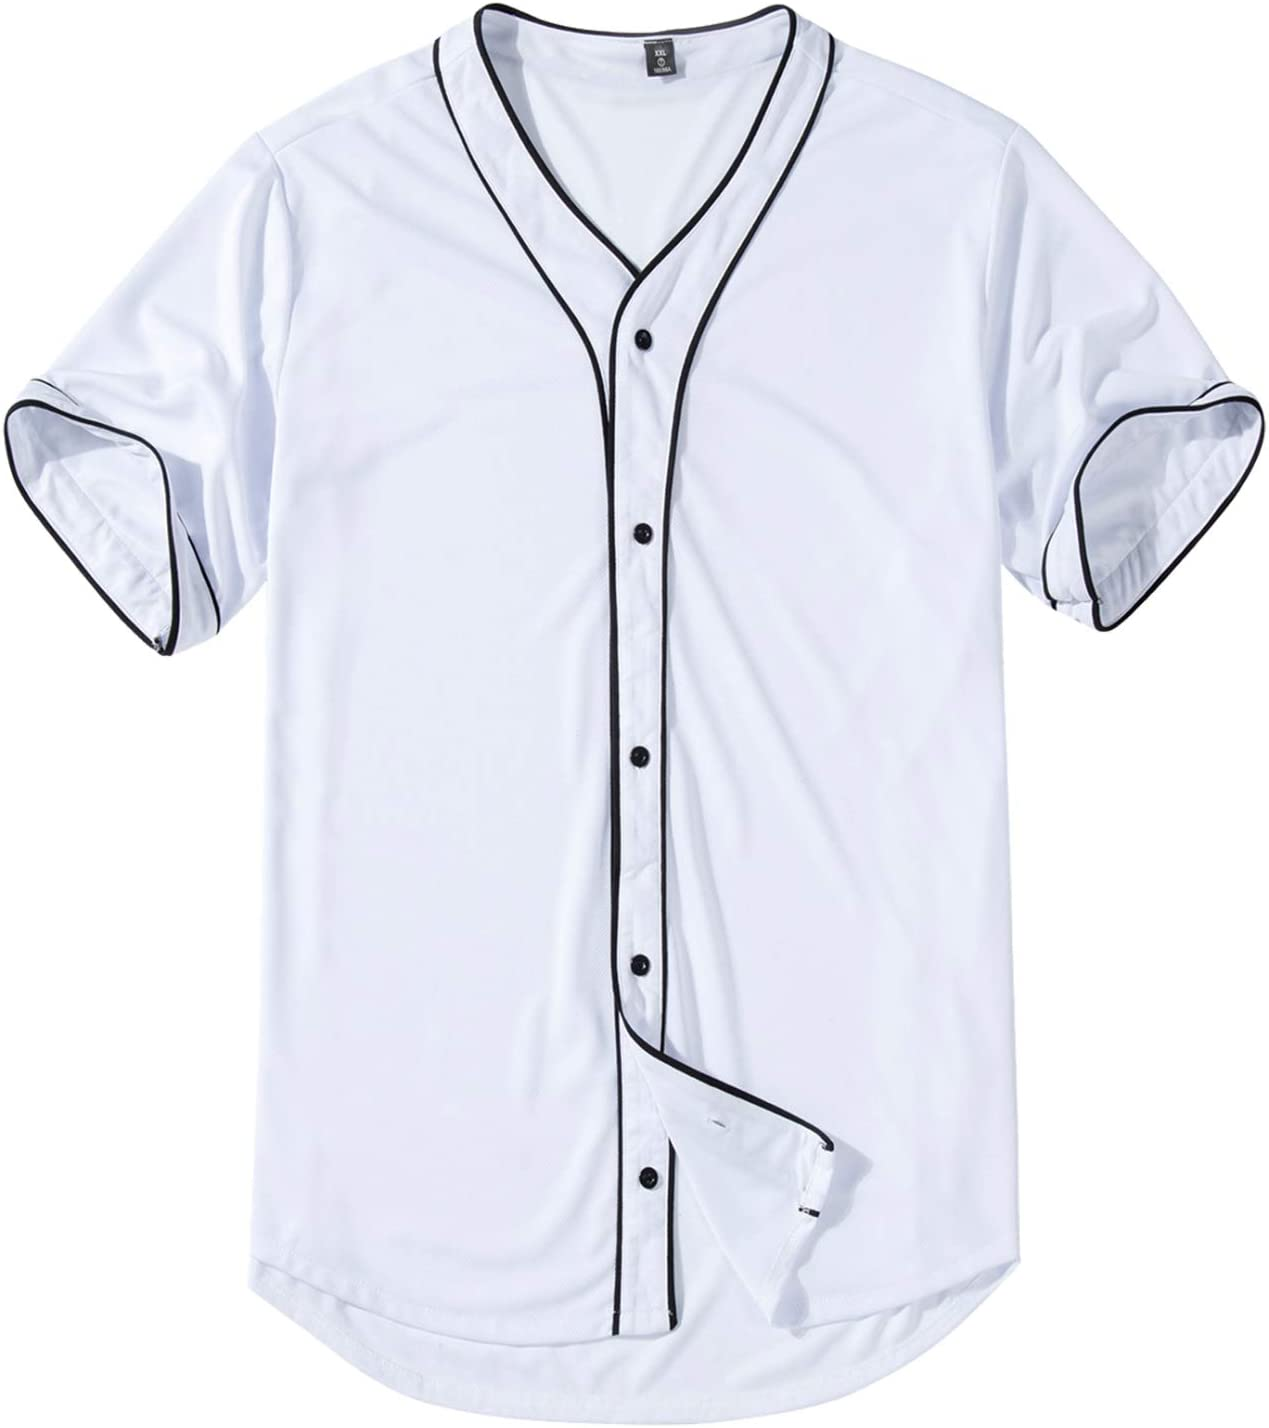 Mowbeat Clearance SALE! Limited time! Boys Youth Black White Baseba Parent-Child Ranking TOP9 Jersey Family